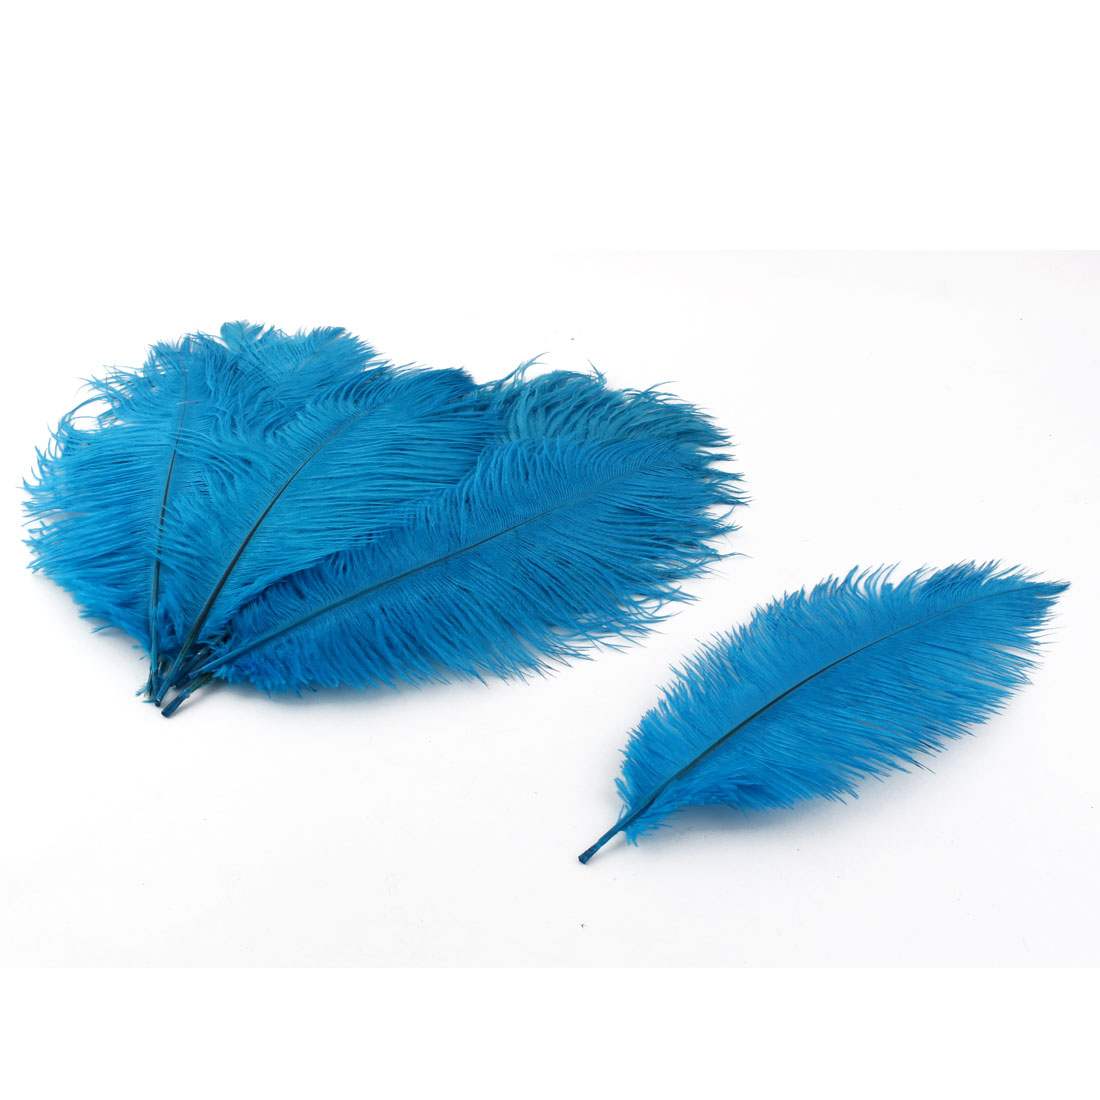 Wedding Party Clothes DIY Decor Ostrich Feathers Plume Lake Blue 20-25cm Length 10pcs